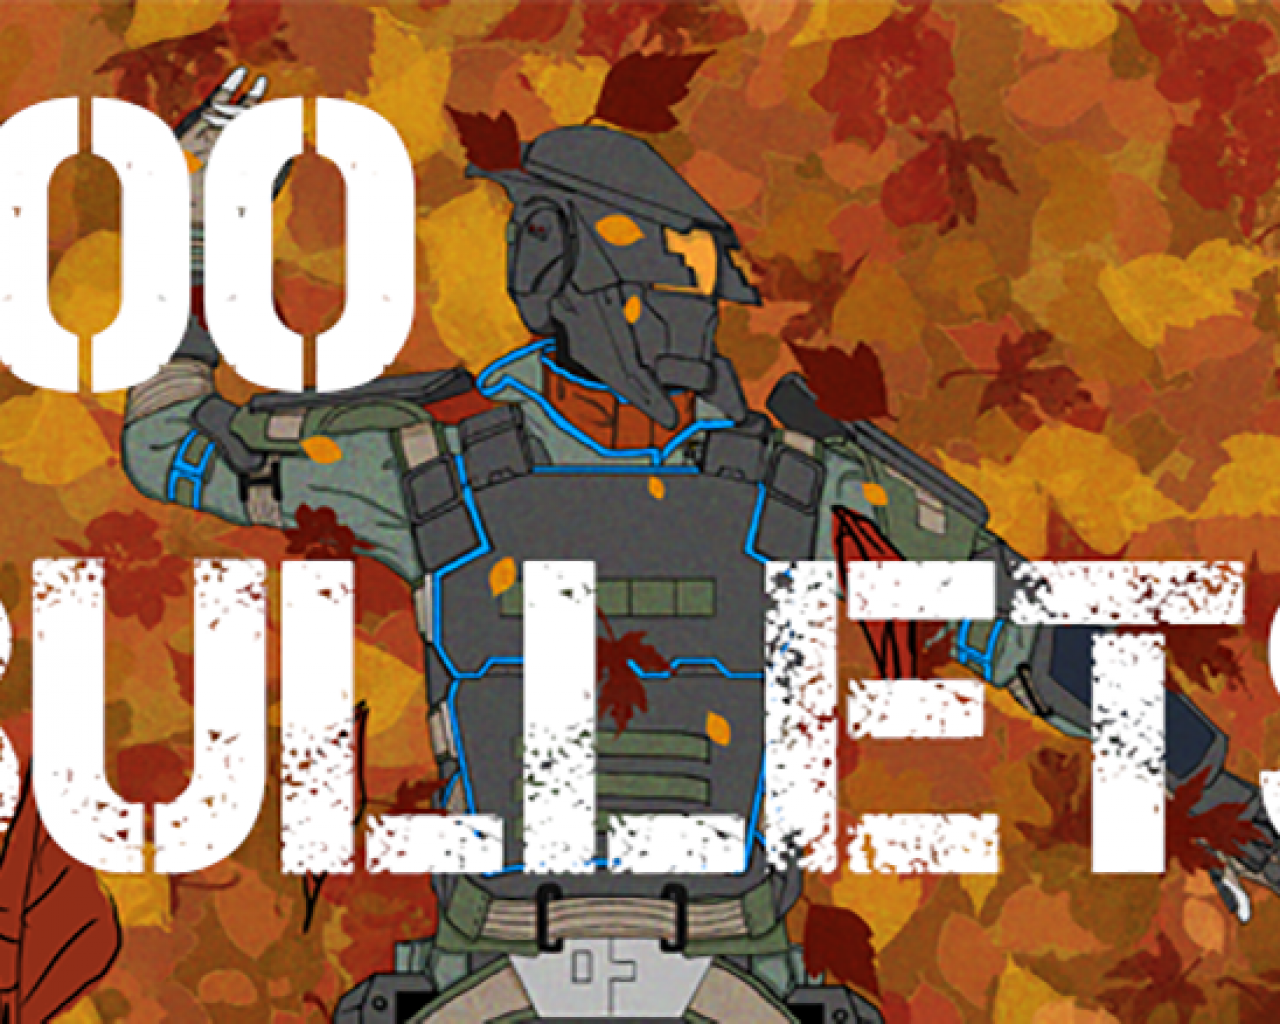 Poster Image for 700 Bullets